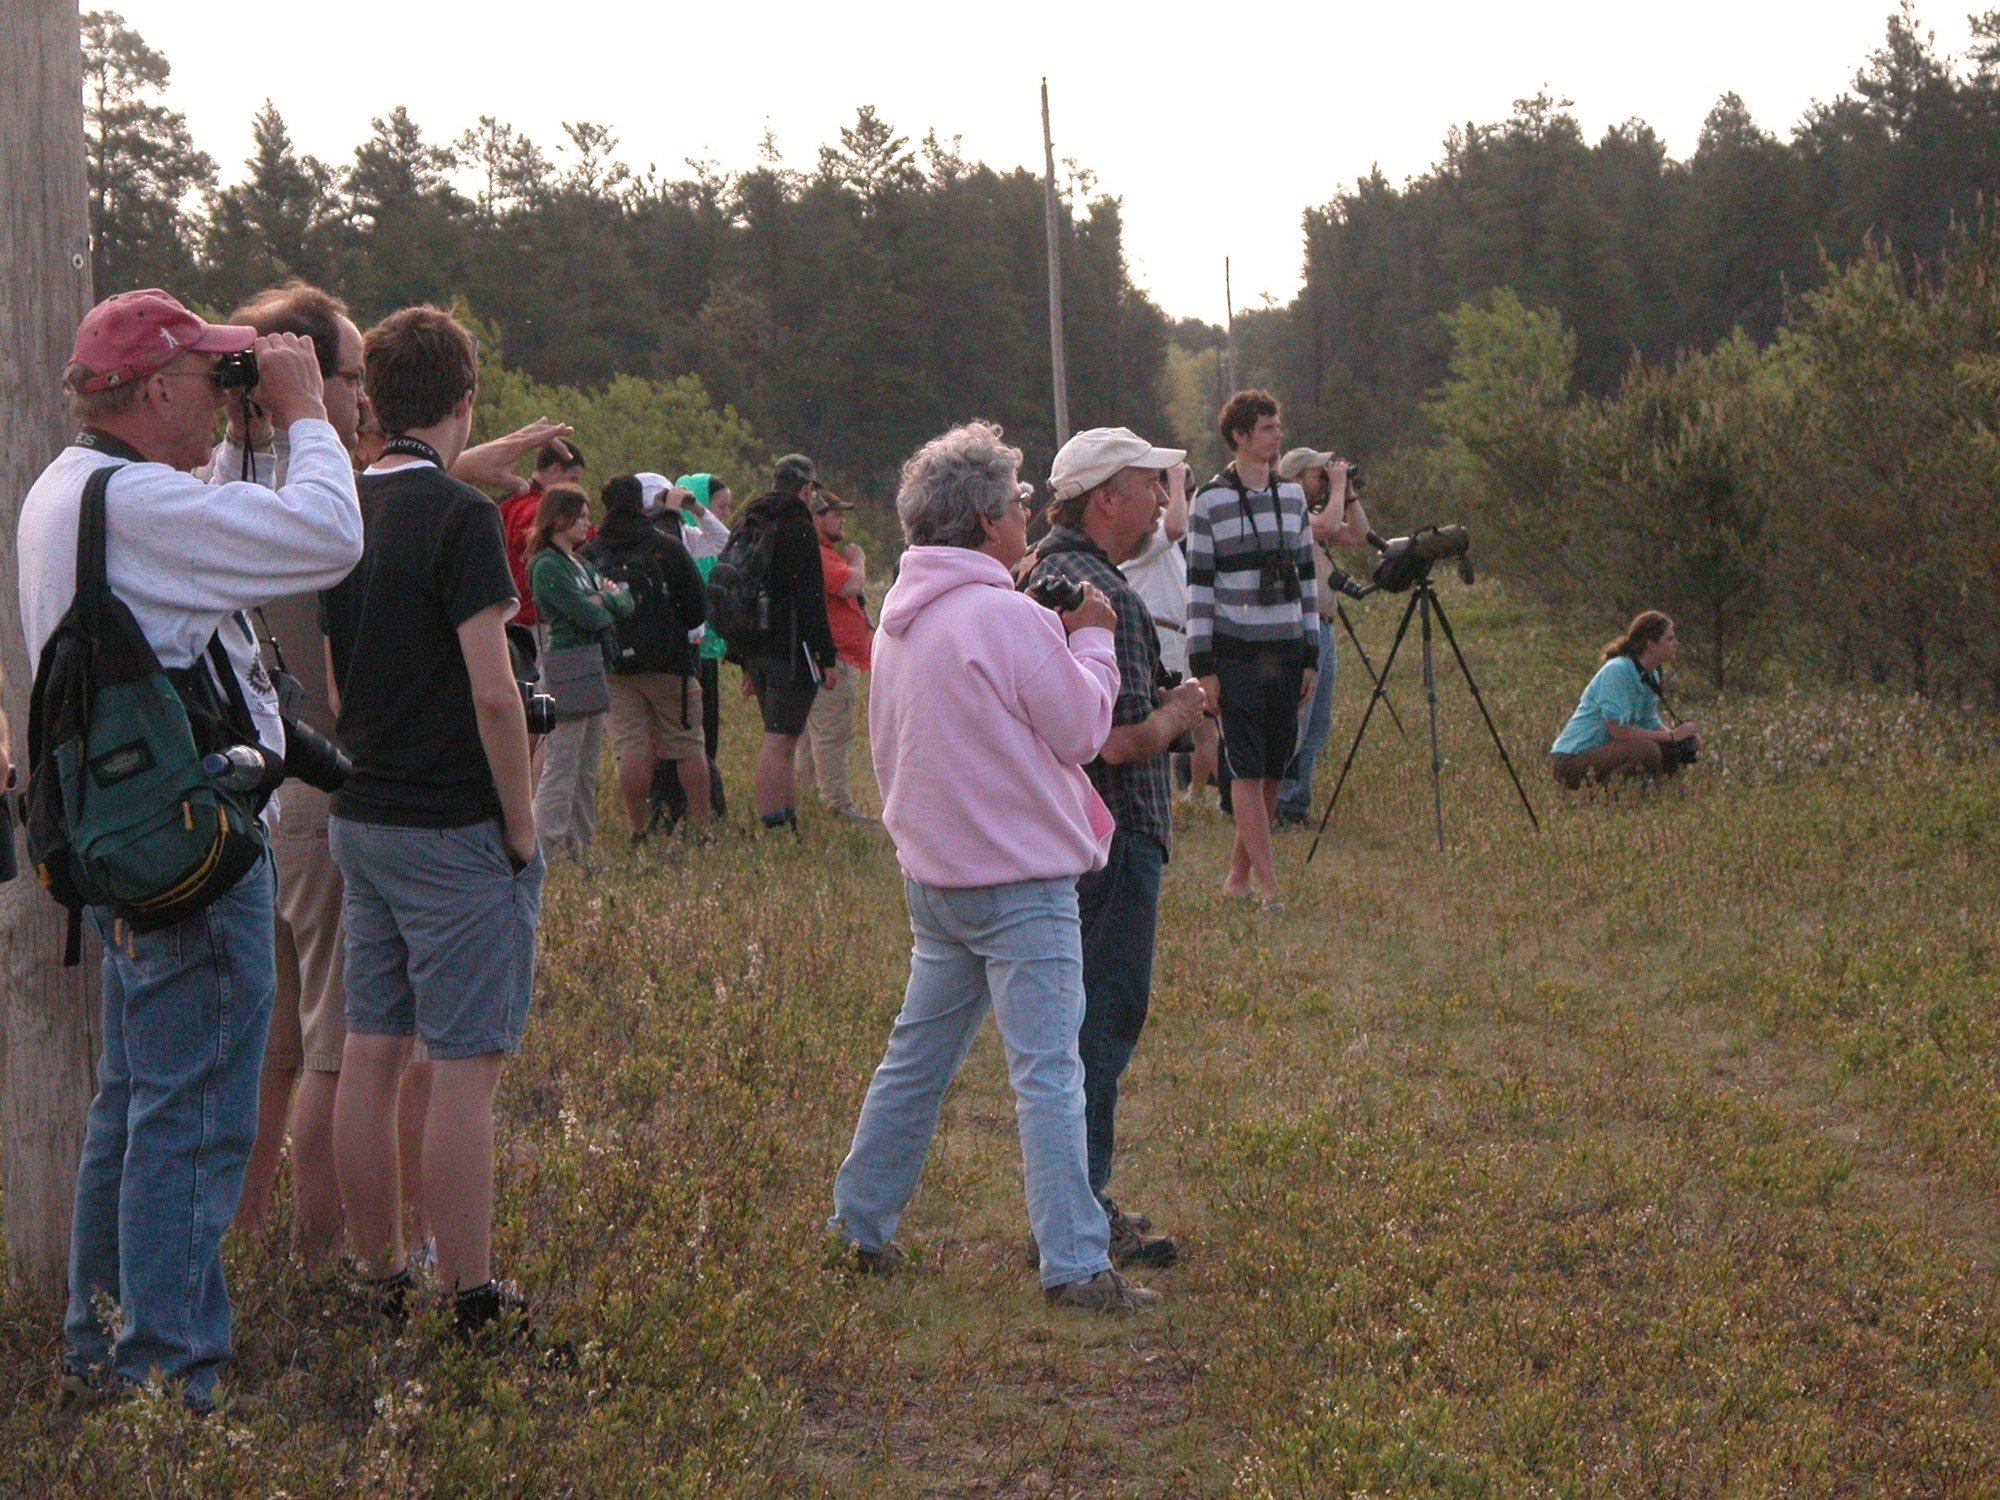 Visitors come from other states, and even other countries, to catch a glimpse of the rare Kirtland's warbler.